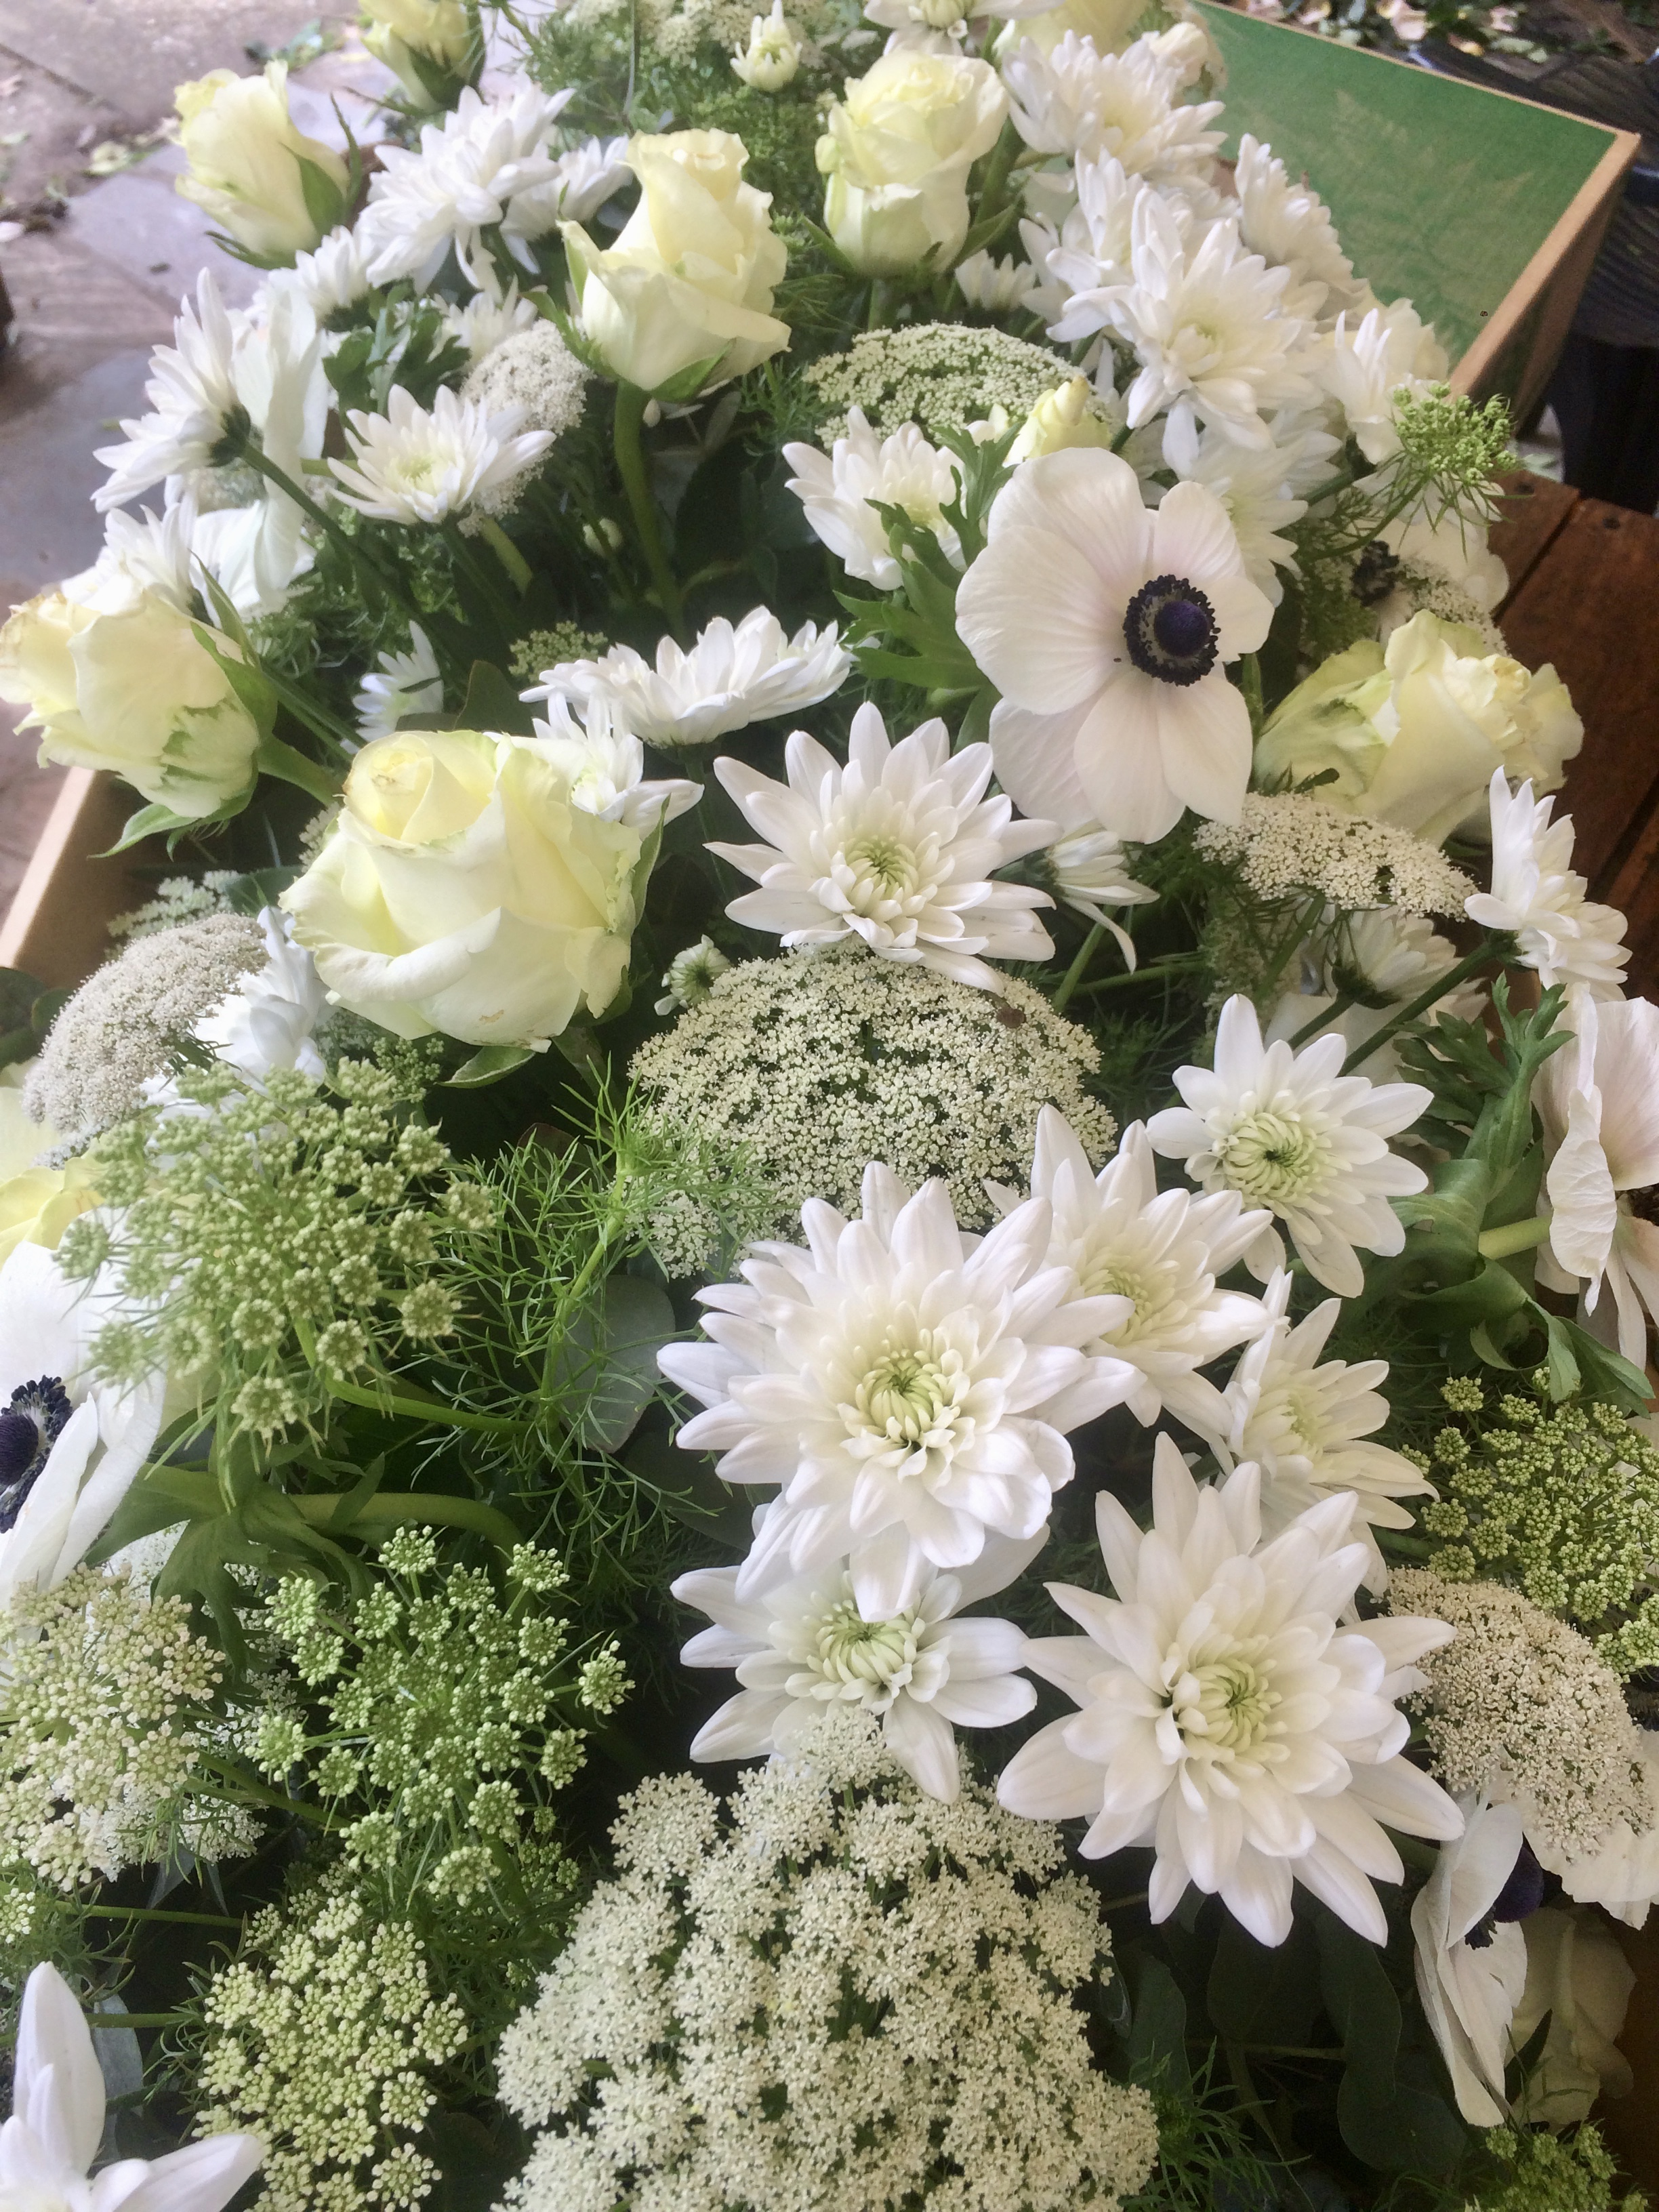 Mixed white and green flower casket spray.